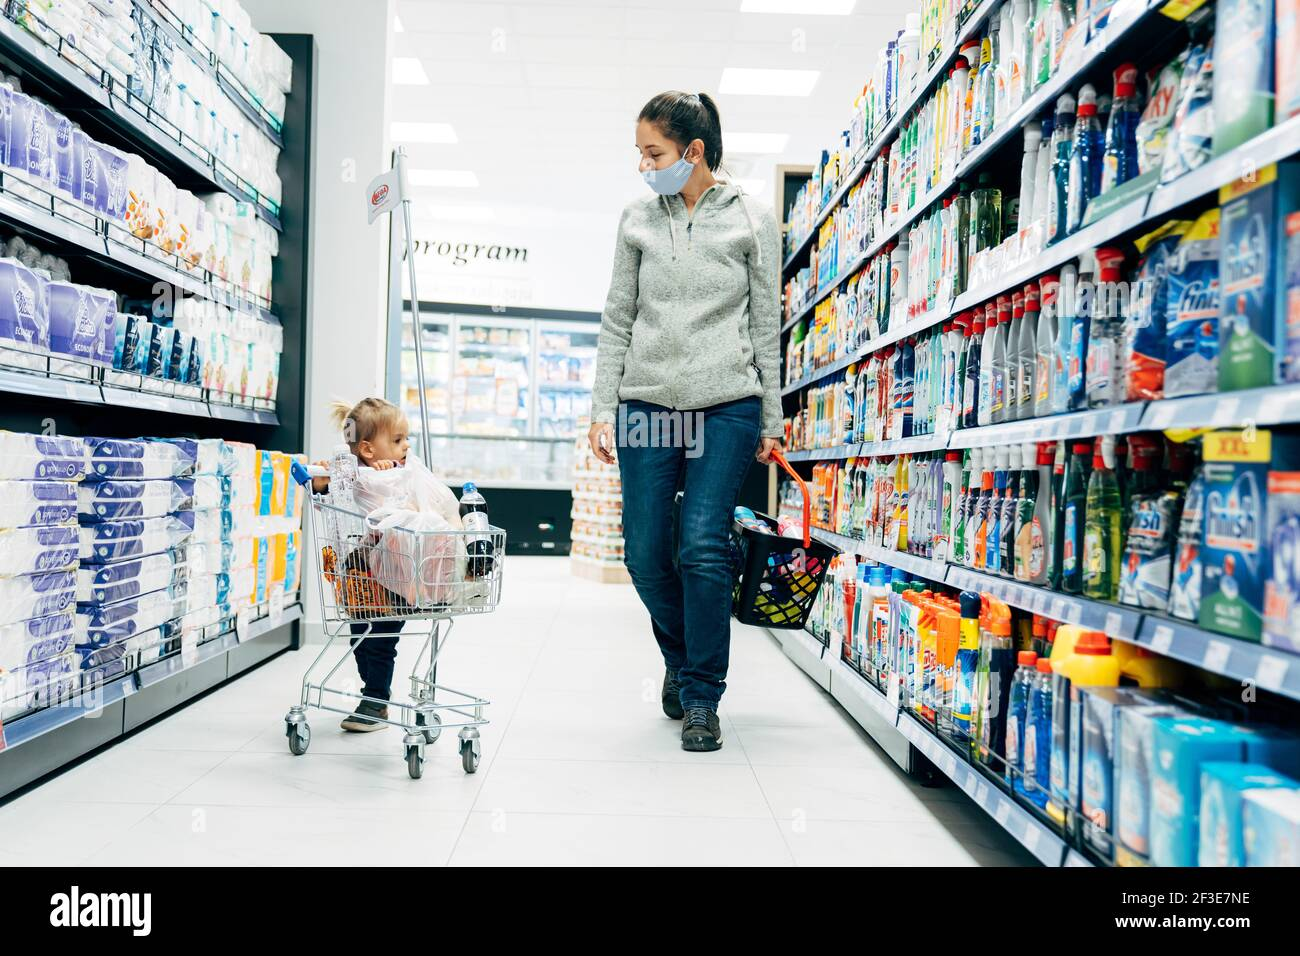 Budva, Montenegro - 17 march 2021: A child with a small trolley in the  supermarket, go shopping with his mother. The family goes shopping Stock  Photo - Alamy